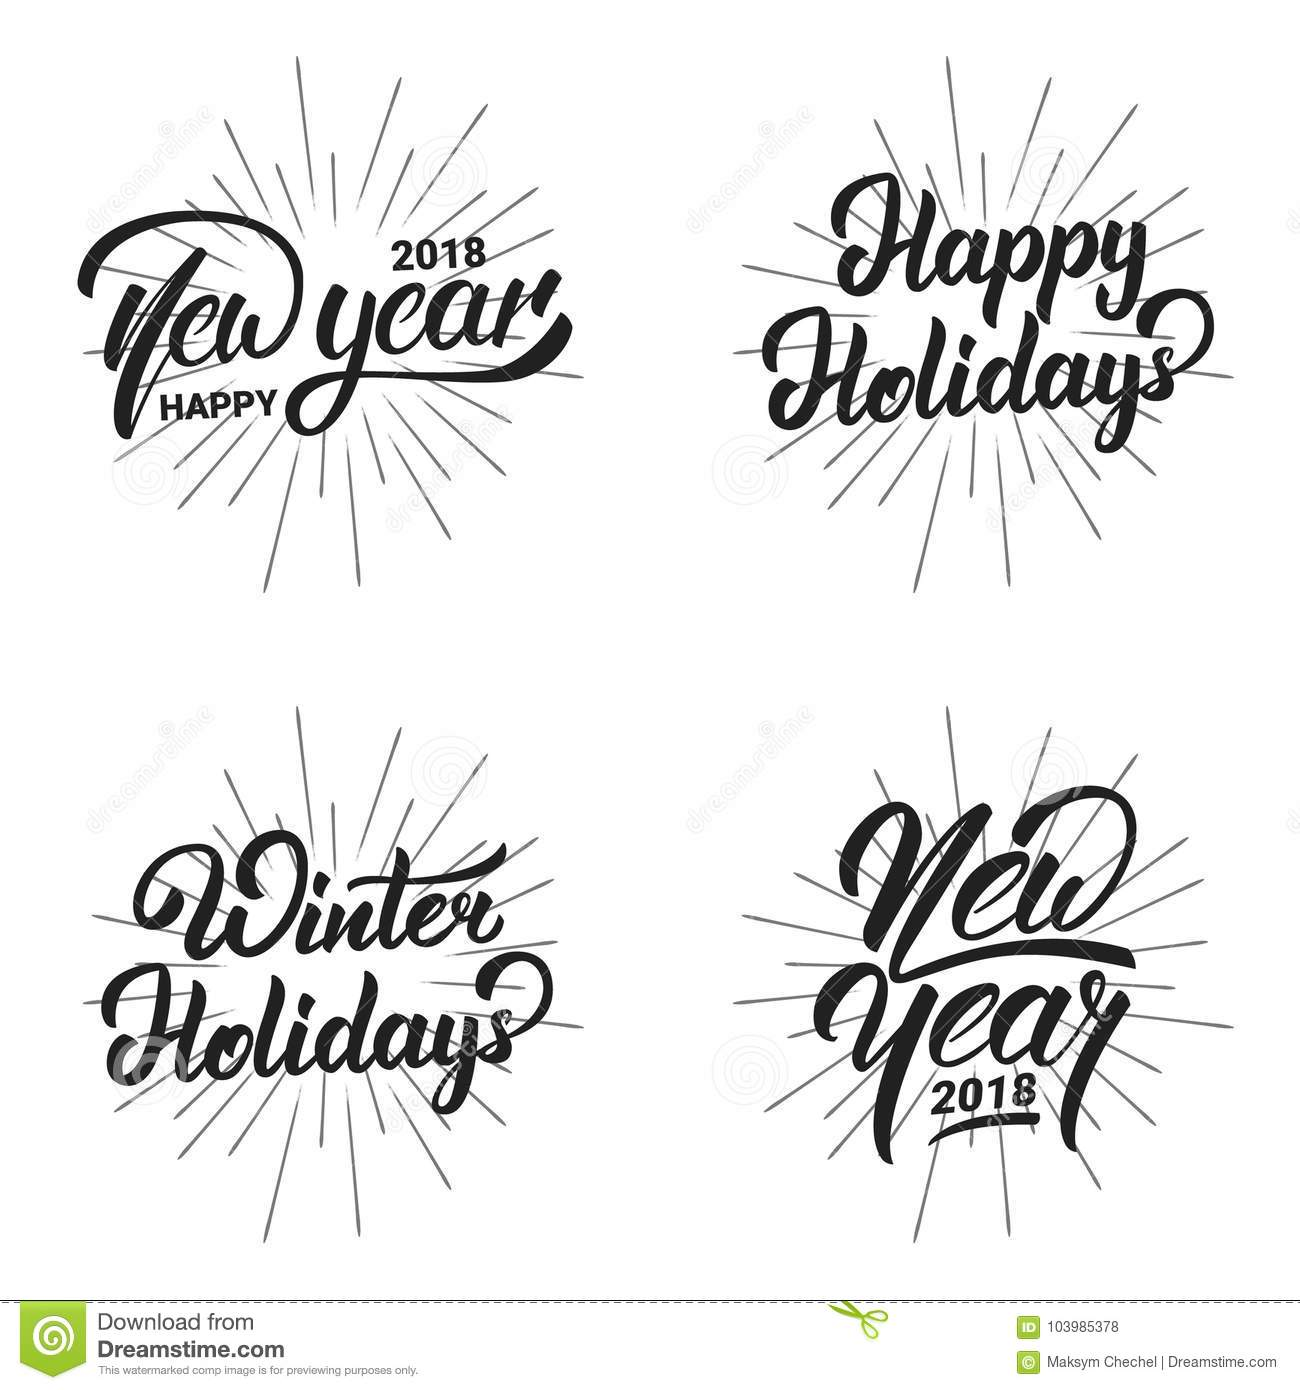 new year happy new year 2018 hand lettering labels set with gold shiny texture